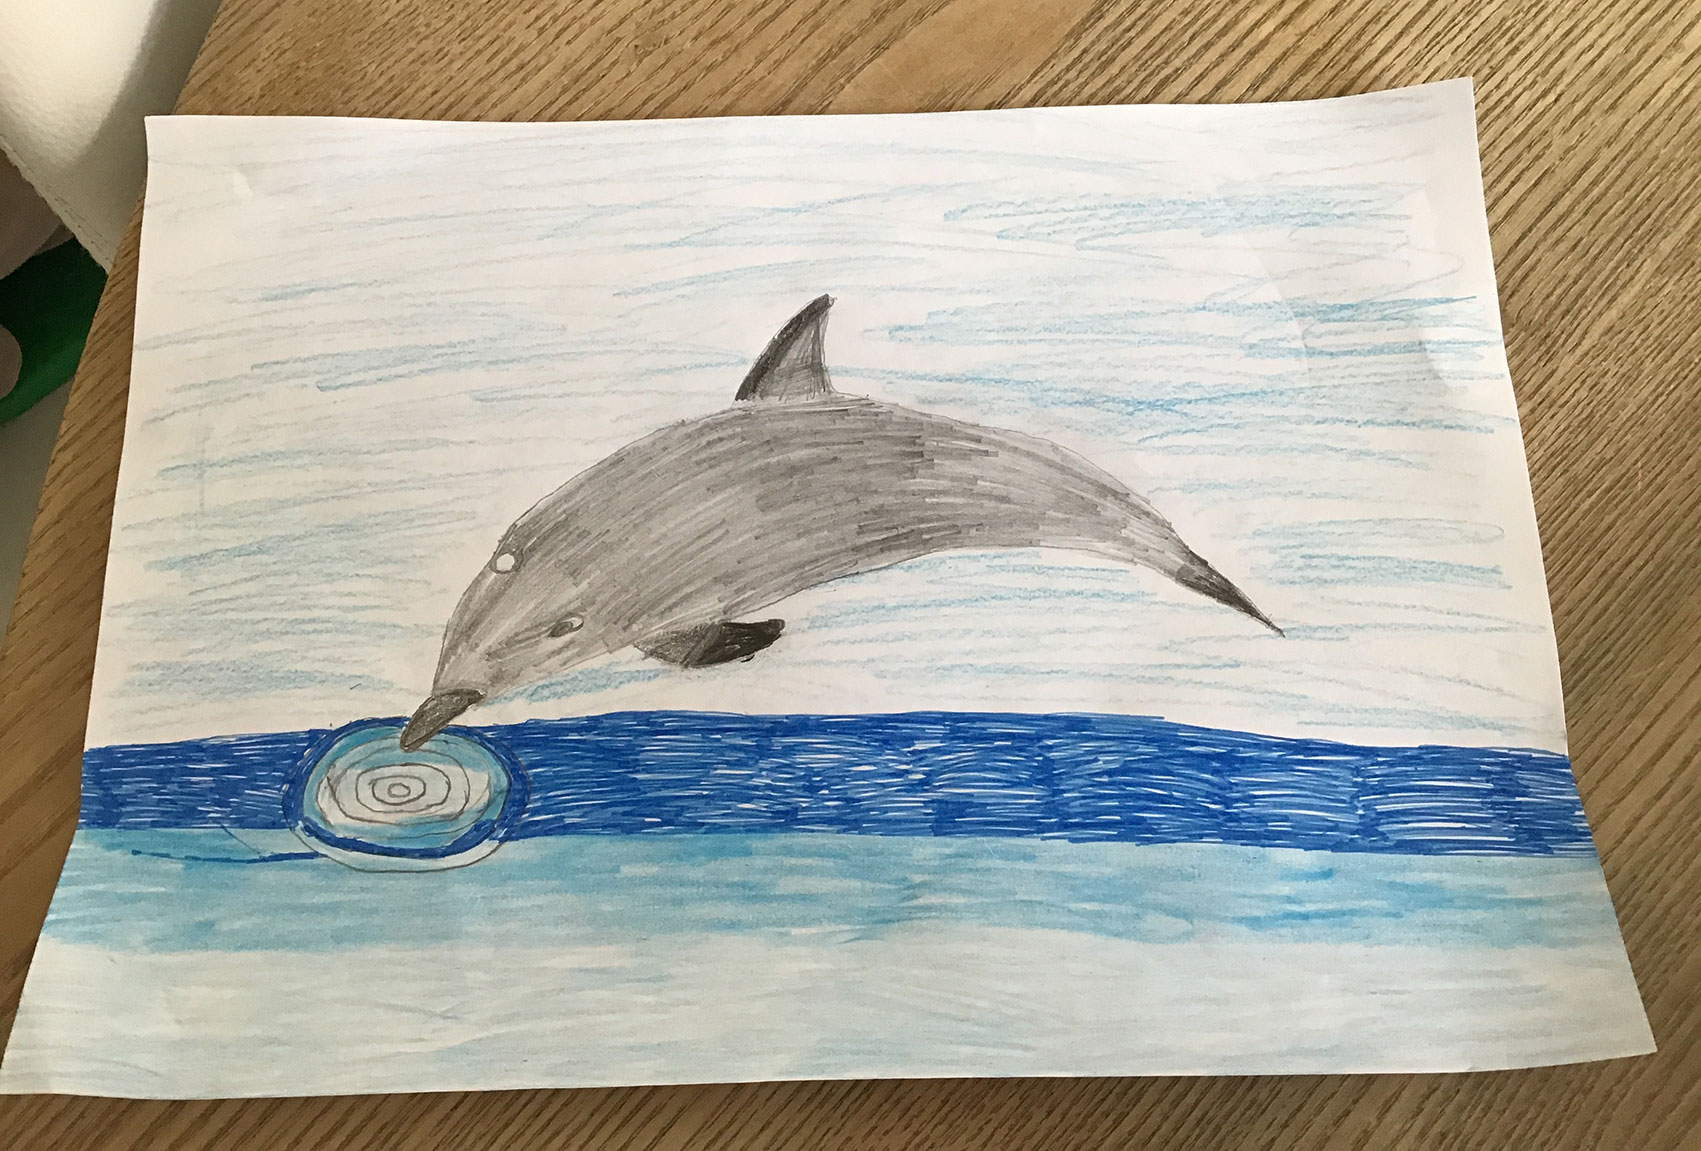 Child's drawing of a dolphin diving into the sea